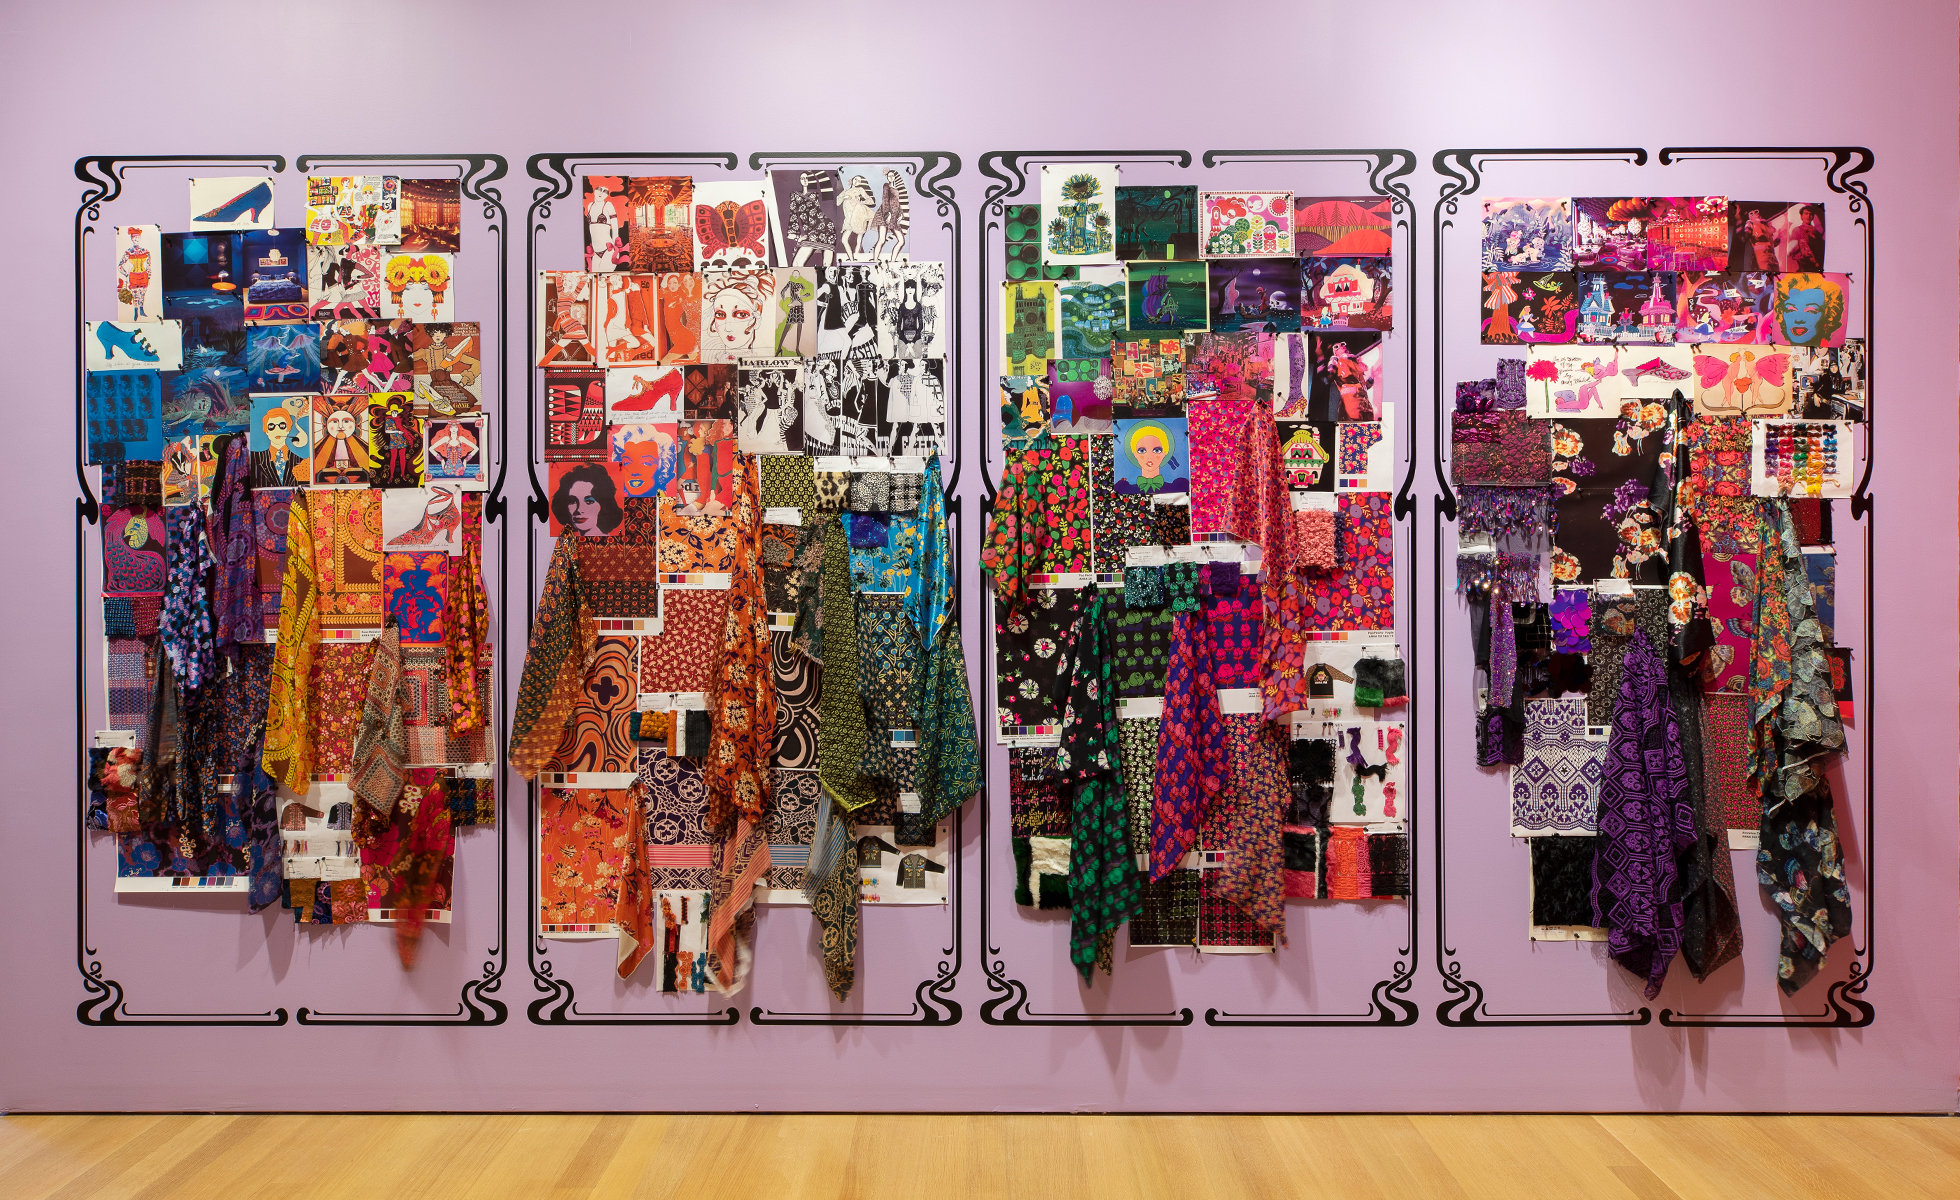 Moodboard installation at The World of Anna Sui at the Museum of Arts and Design, New York | Photo: Jenna Bascom